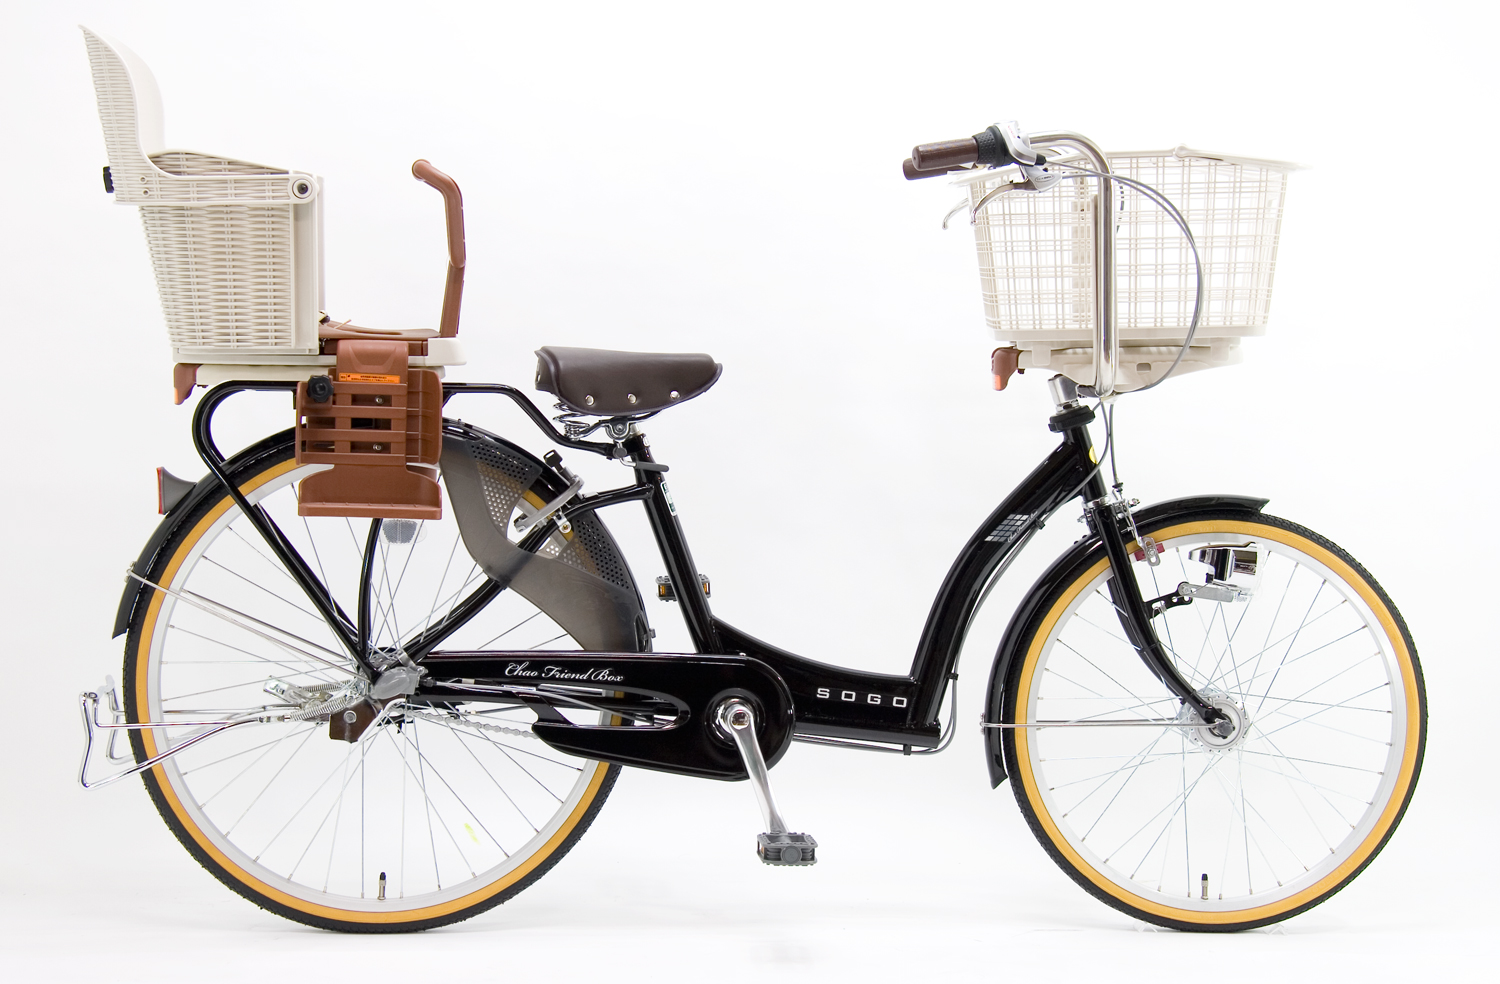 Pick up SOGO child; bicycle CHF26B FS-free carry (there is no shifting) BAA